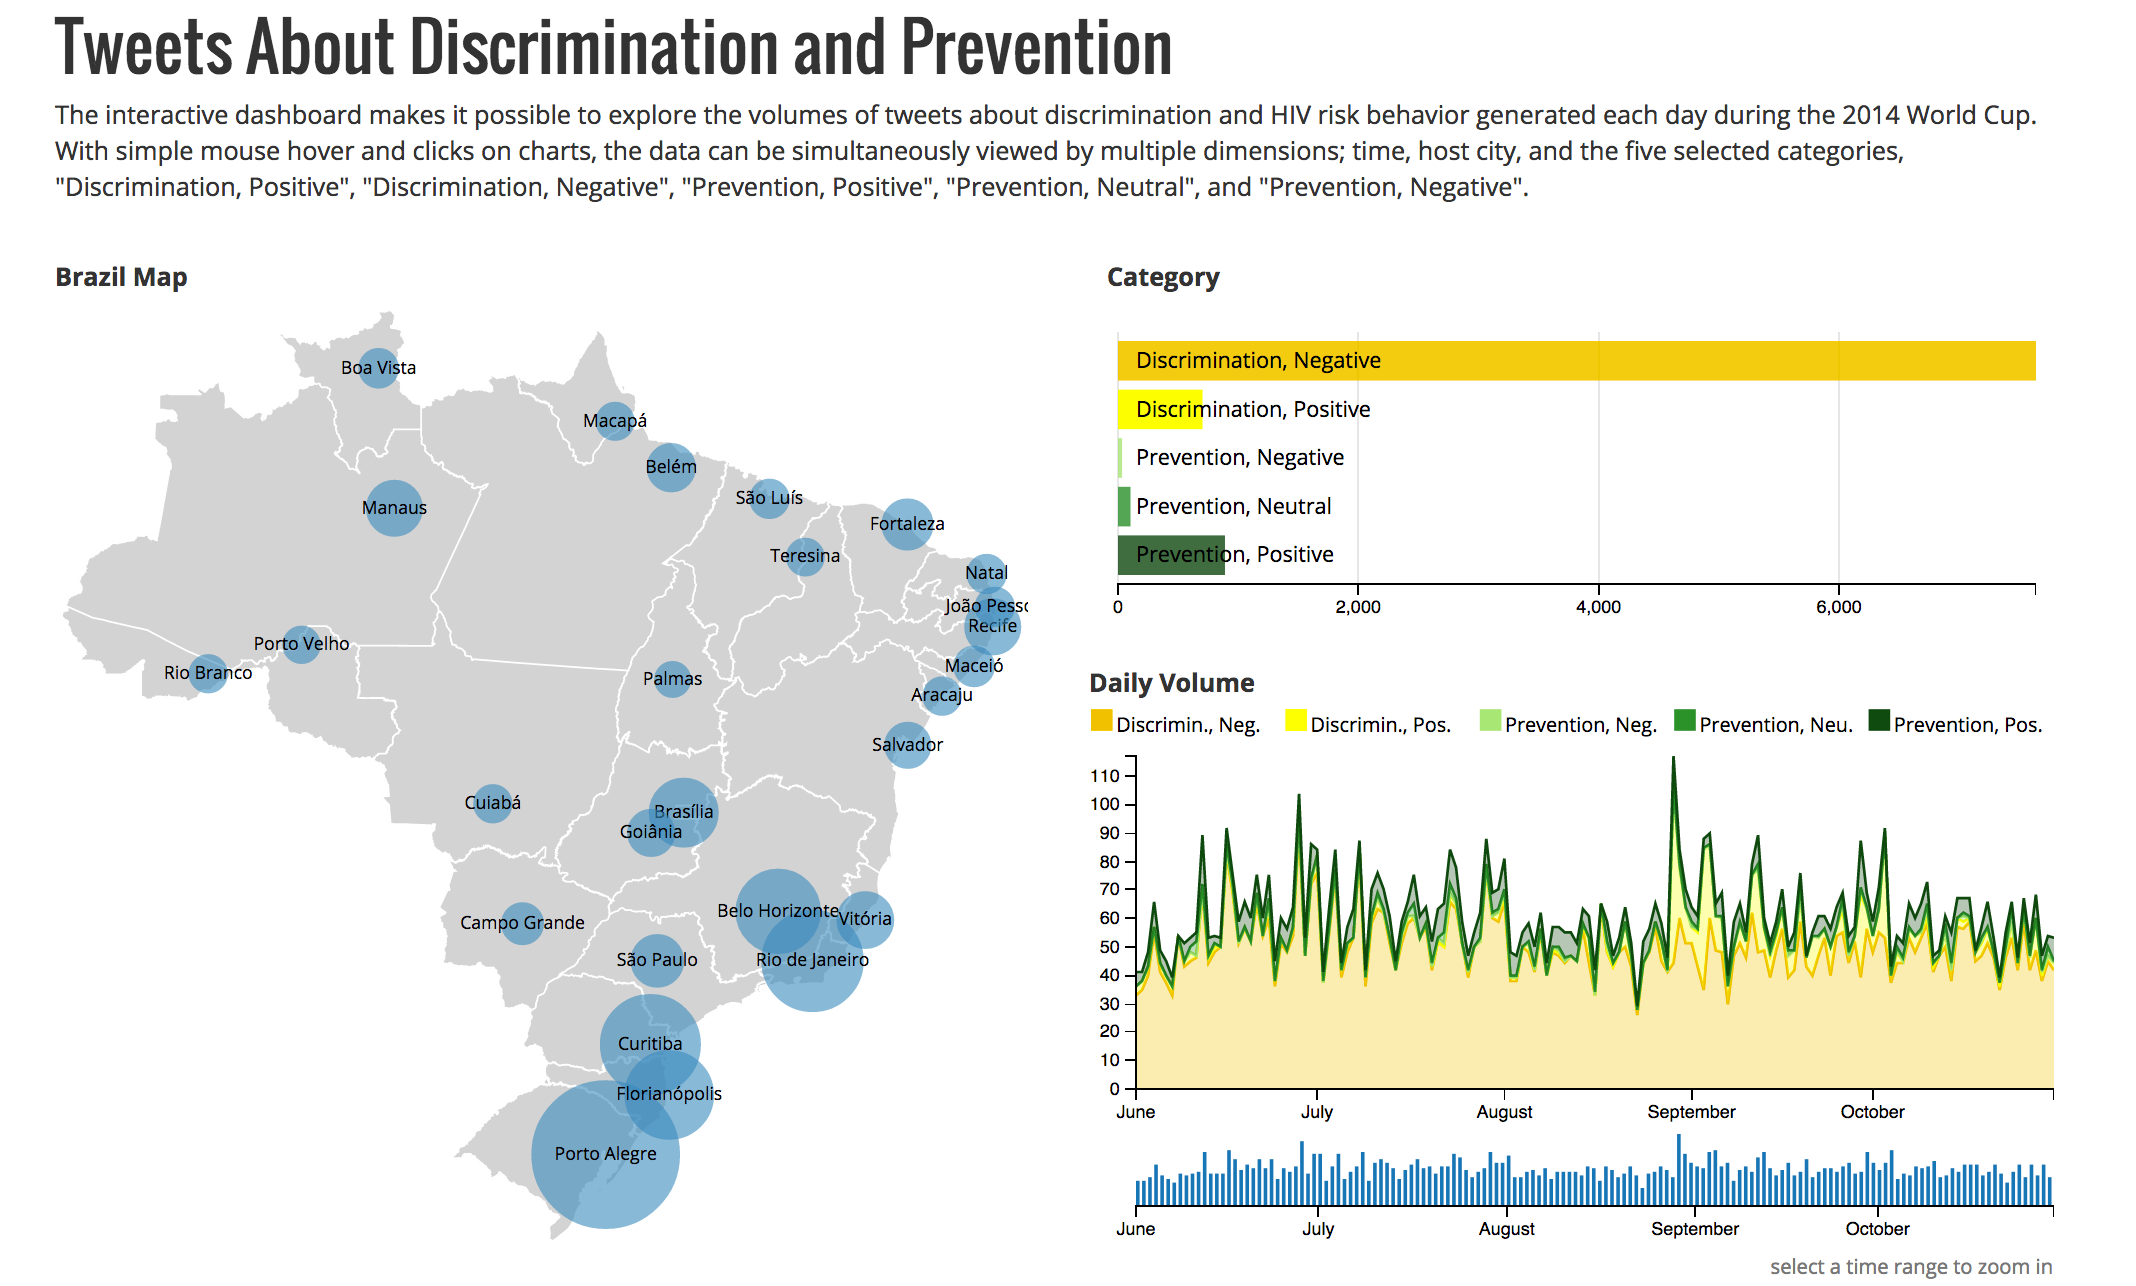 Tweets_About_Discrimination_and_HIV_AIDS